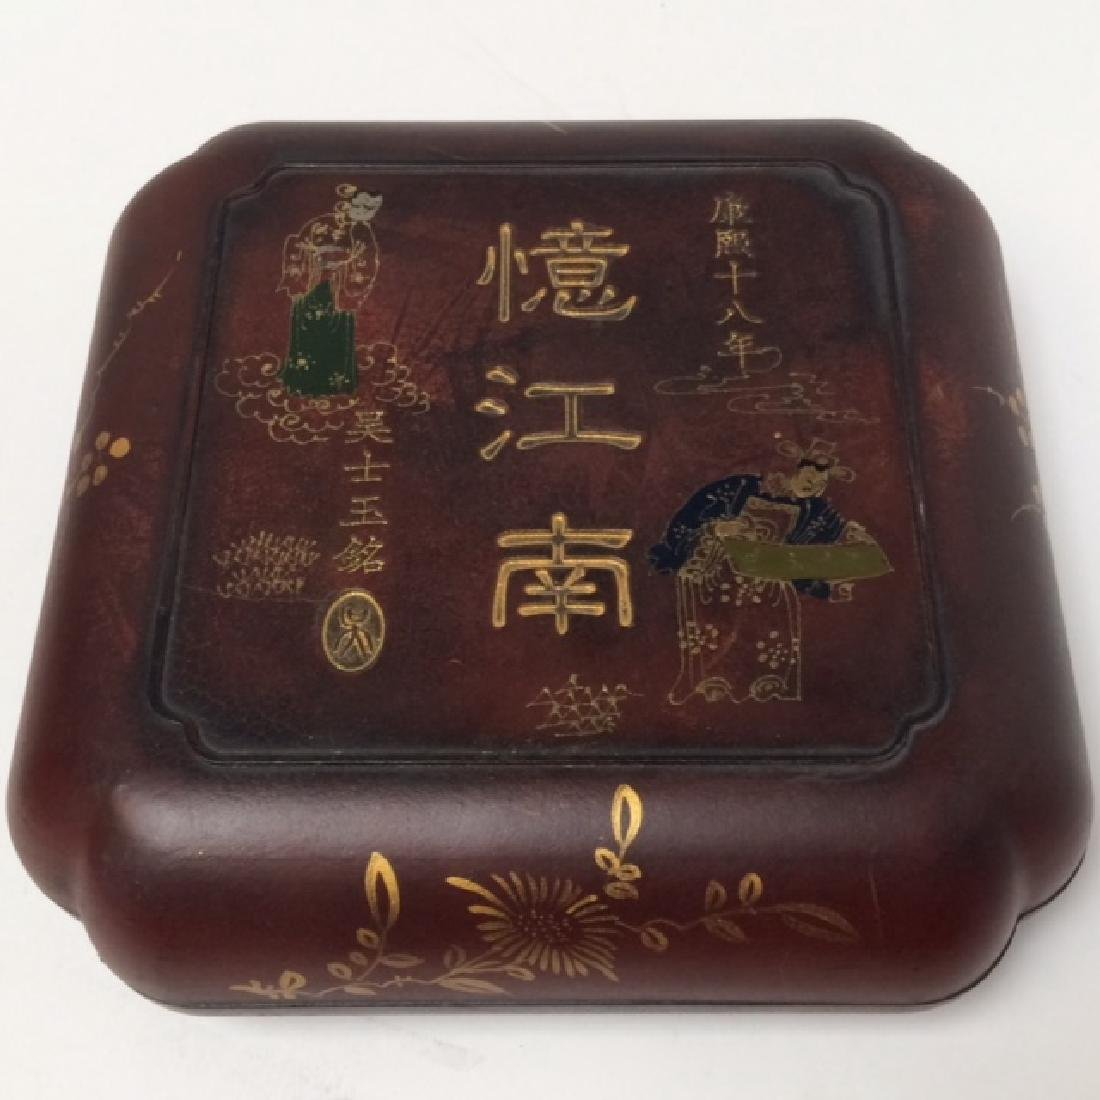 Qing Dai Inkstone with Box - 2